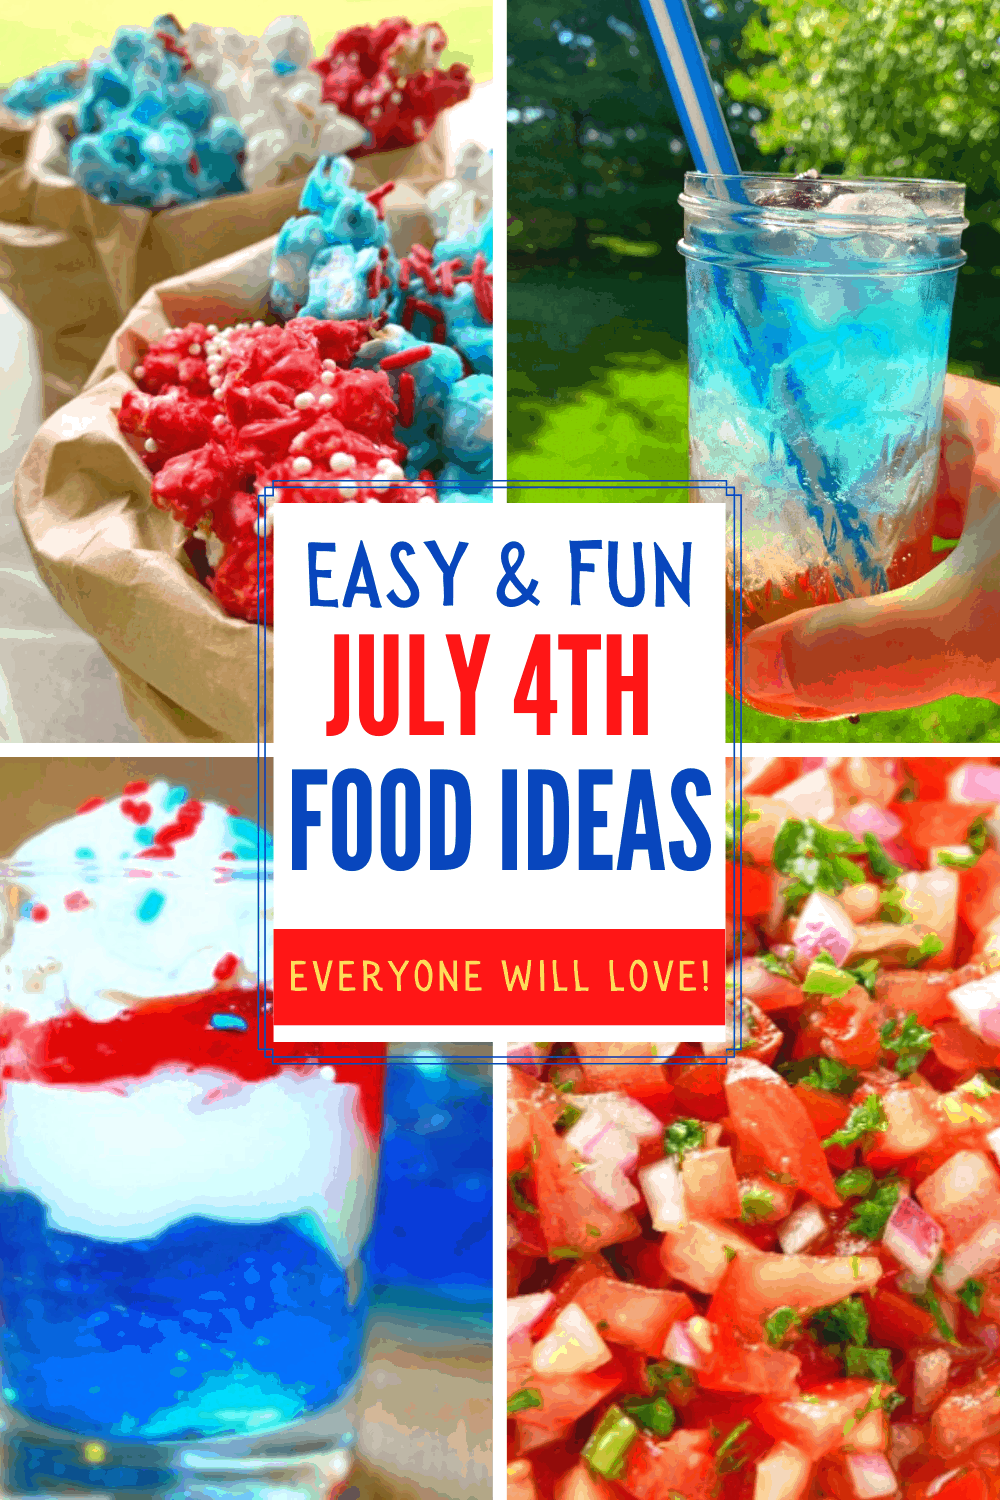 Easy July 4th Food Ideas collage of red white and blue food ideas